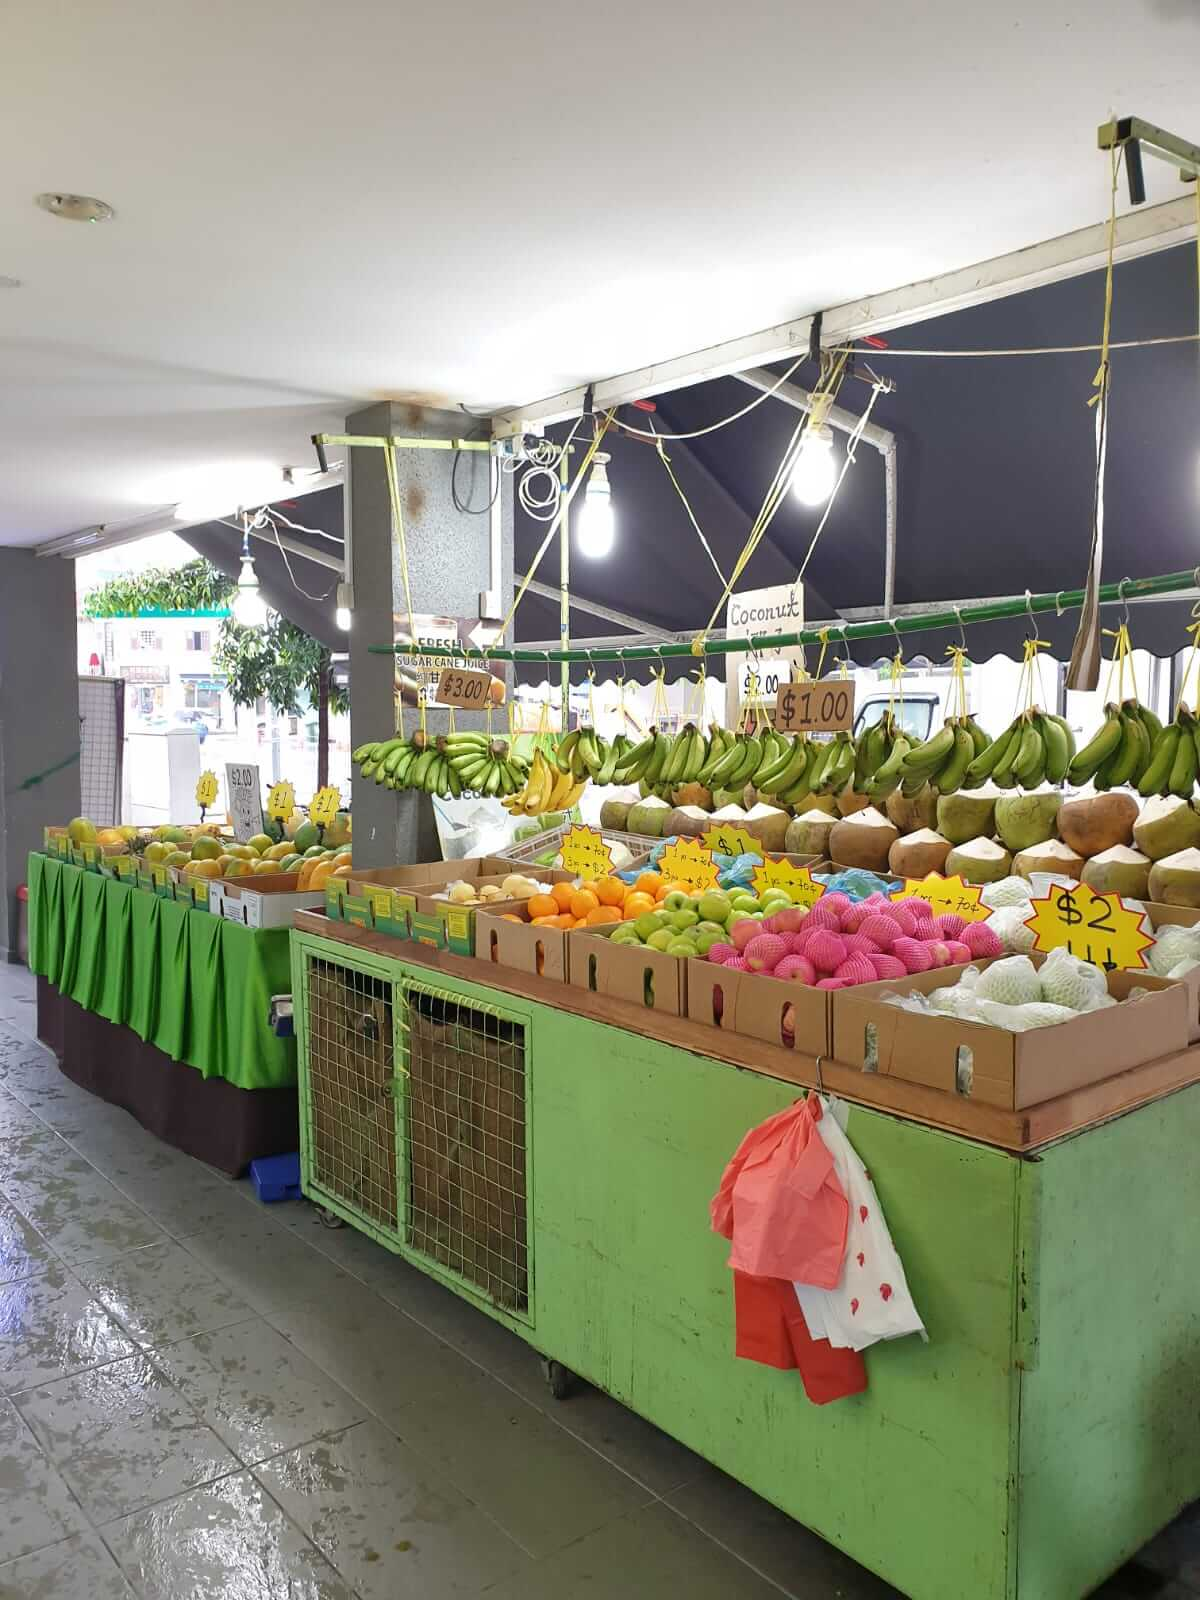 Fruits and juices shop for takeover